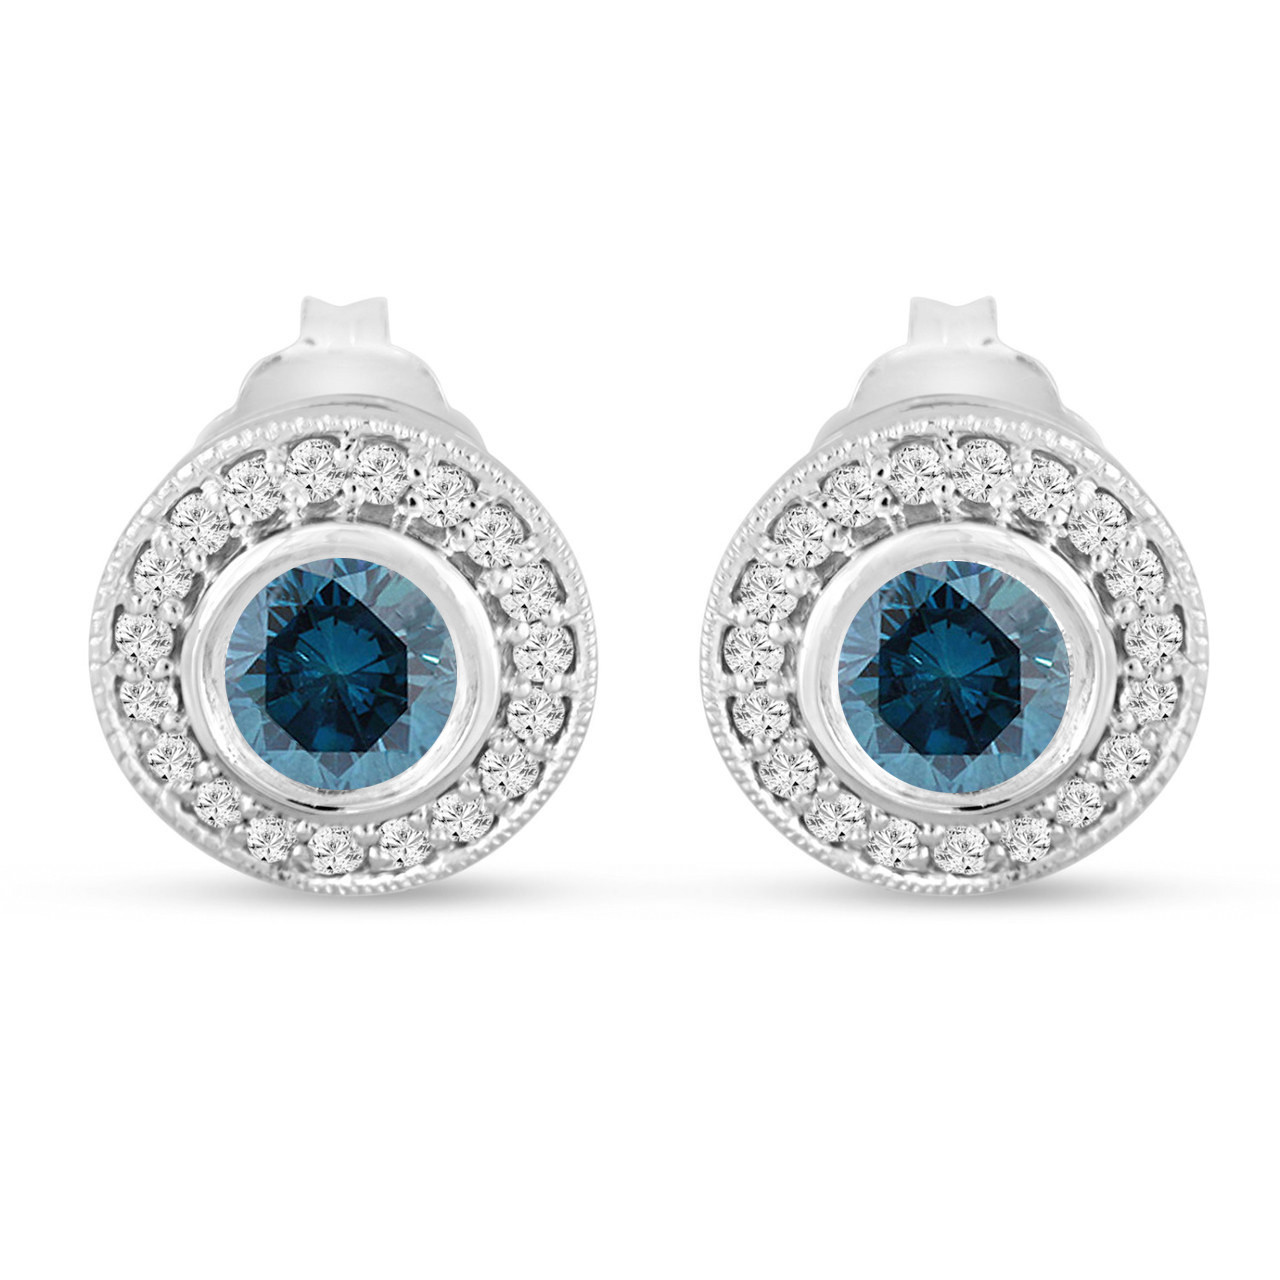 23069cc7419e3 Blue Diamond Earrings, Halo Stud Earrings, 14K White Gold 0.84 Carat Bezel  And Micro Pave Handmade Unique